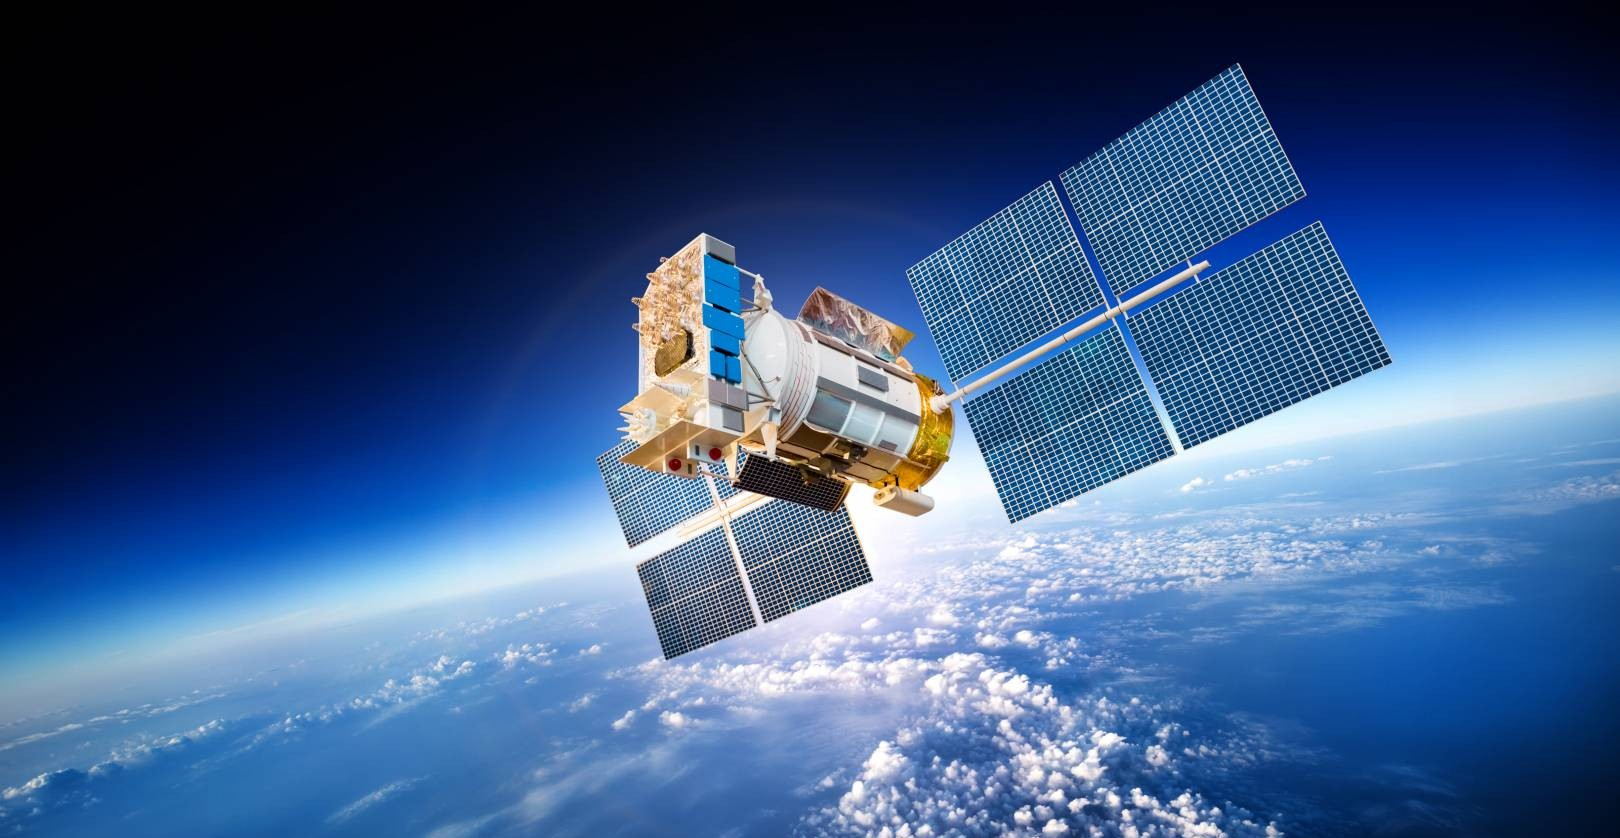 The global space technology and exploration market is worth approximately $314bn a year. Image courtesy of DPC.